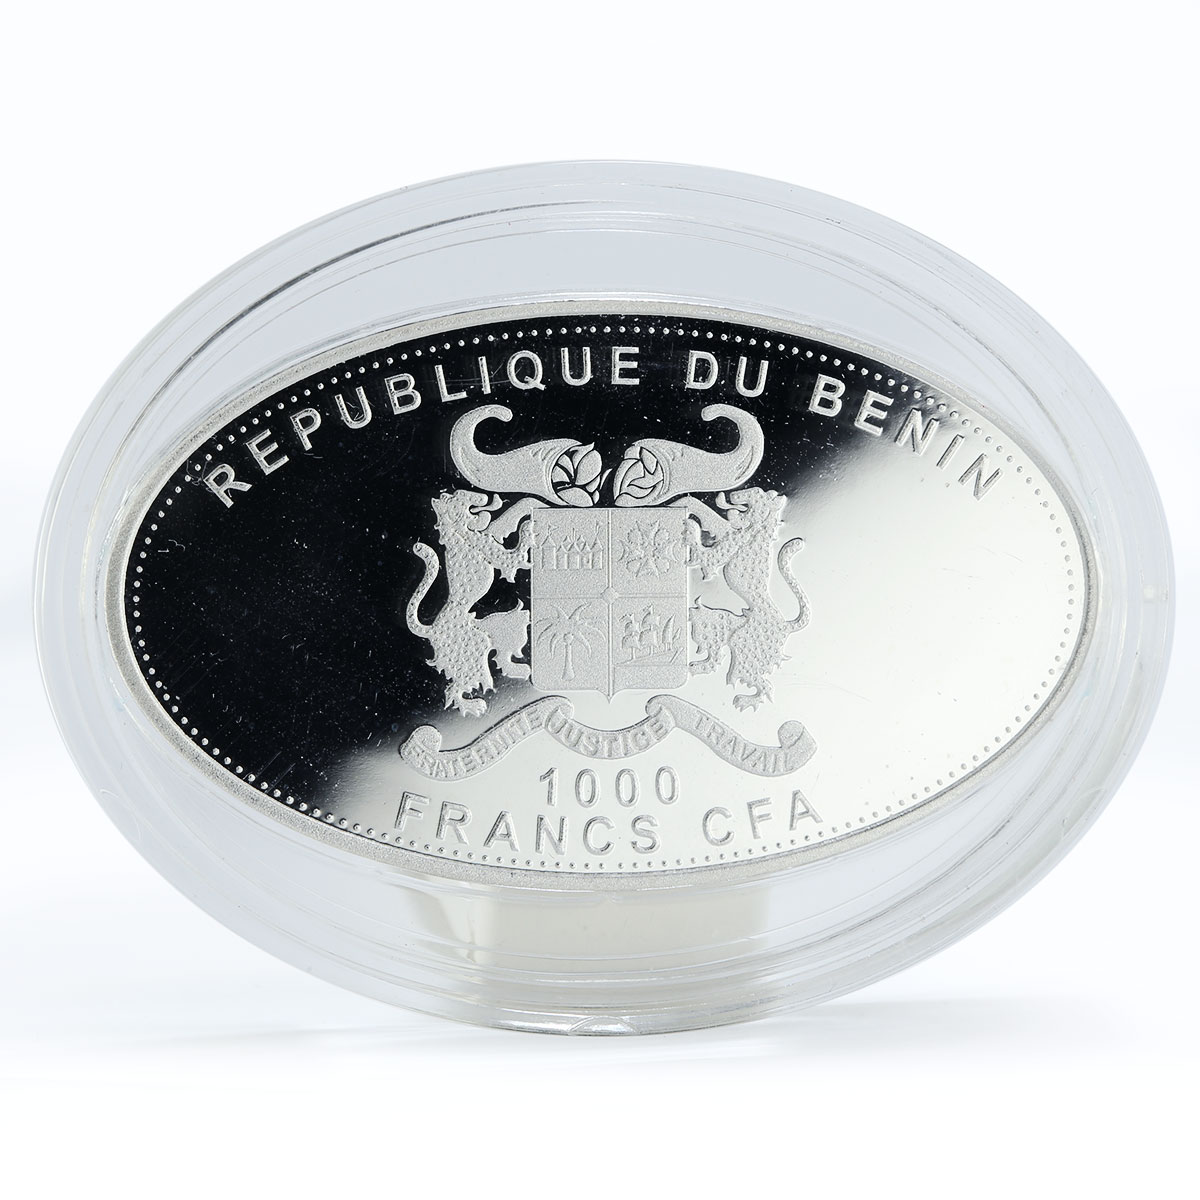 Benin 1000 francs Year of the Snake colored proof silver coin 2013